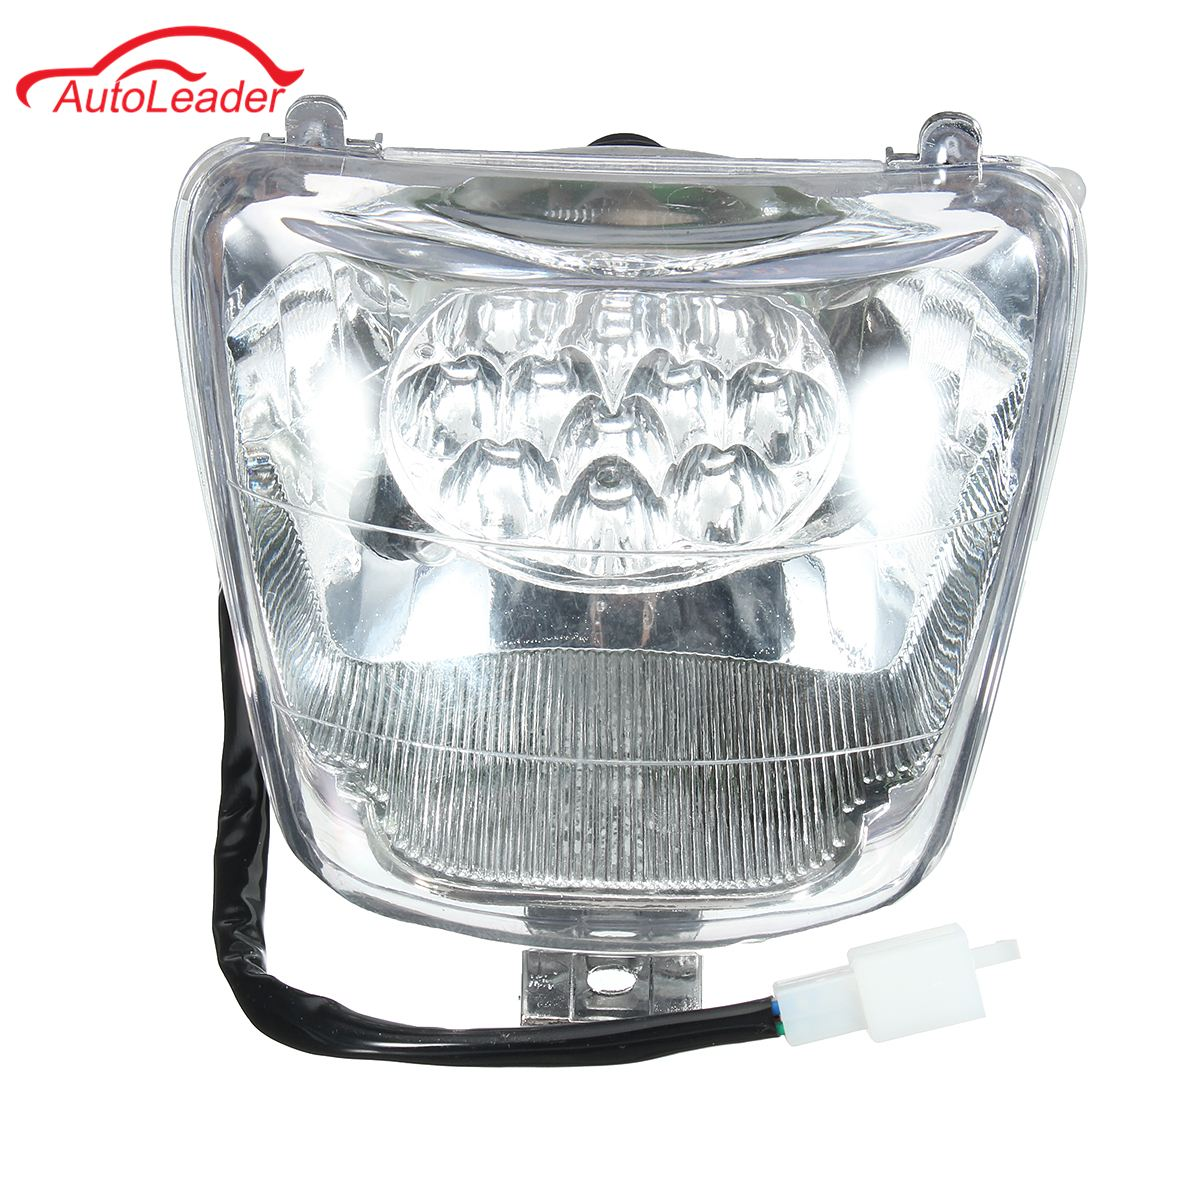 Atv Front Light Headlight For 50cc 70cc 90cc 110cc 125cc Mini Wiring From China Bestselling Motorcycle Quad Bike Buggy In Parts Accessories Automobiles Motorcycles On